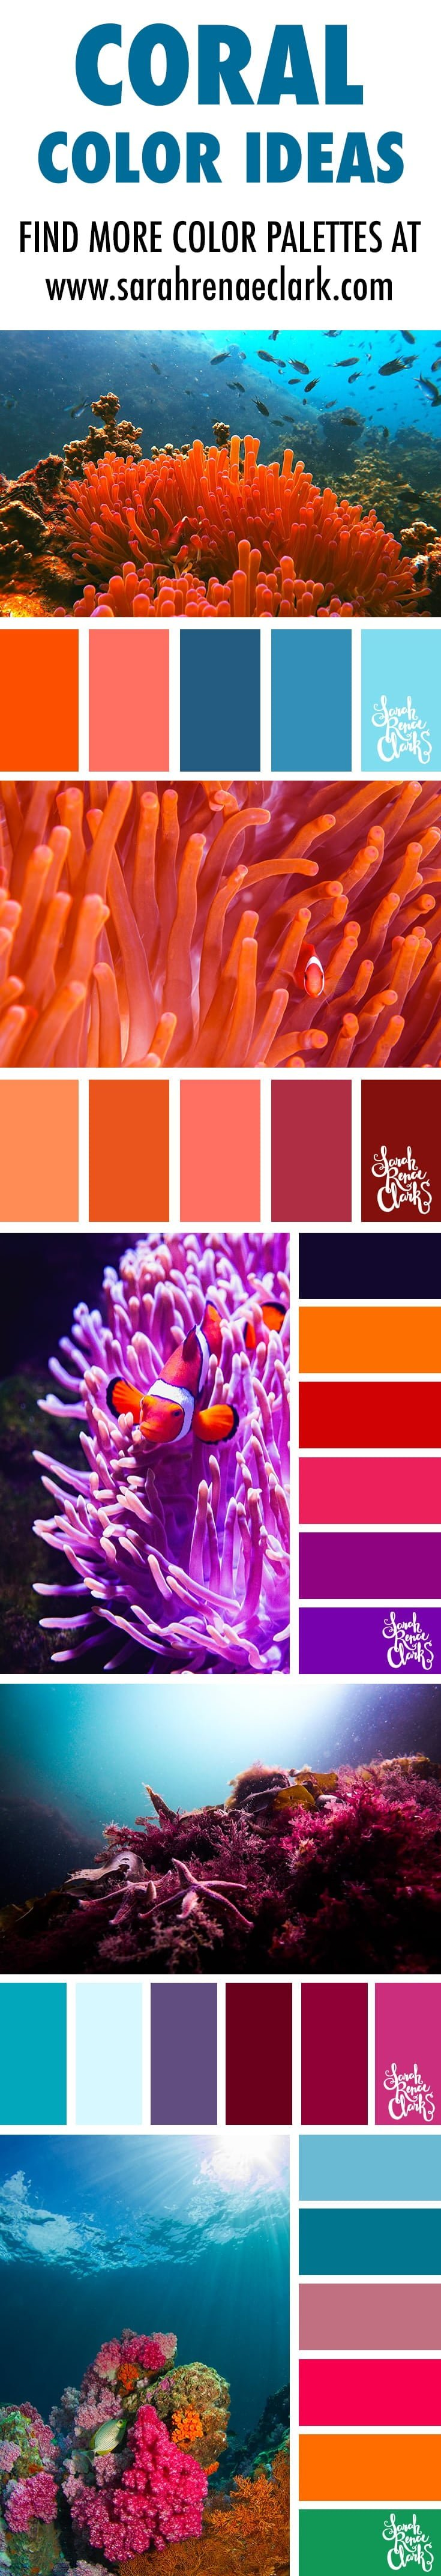 coral color palettes, color schemes, color ideas